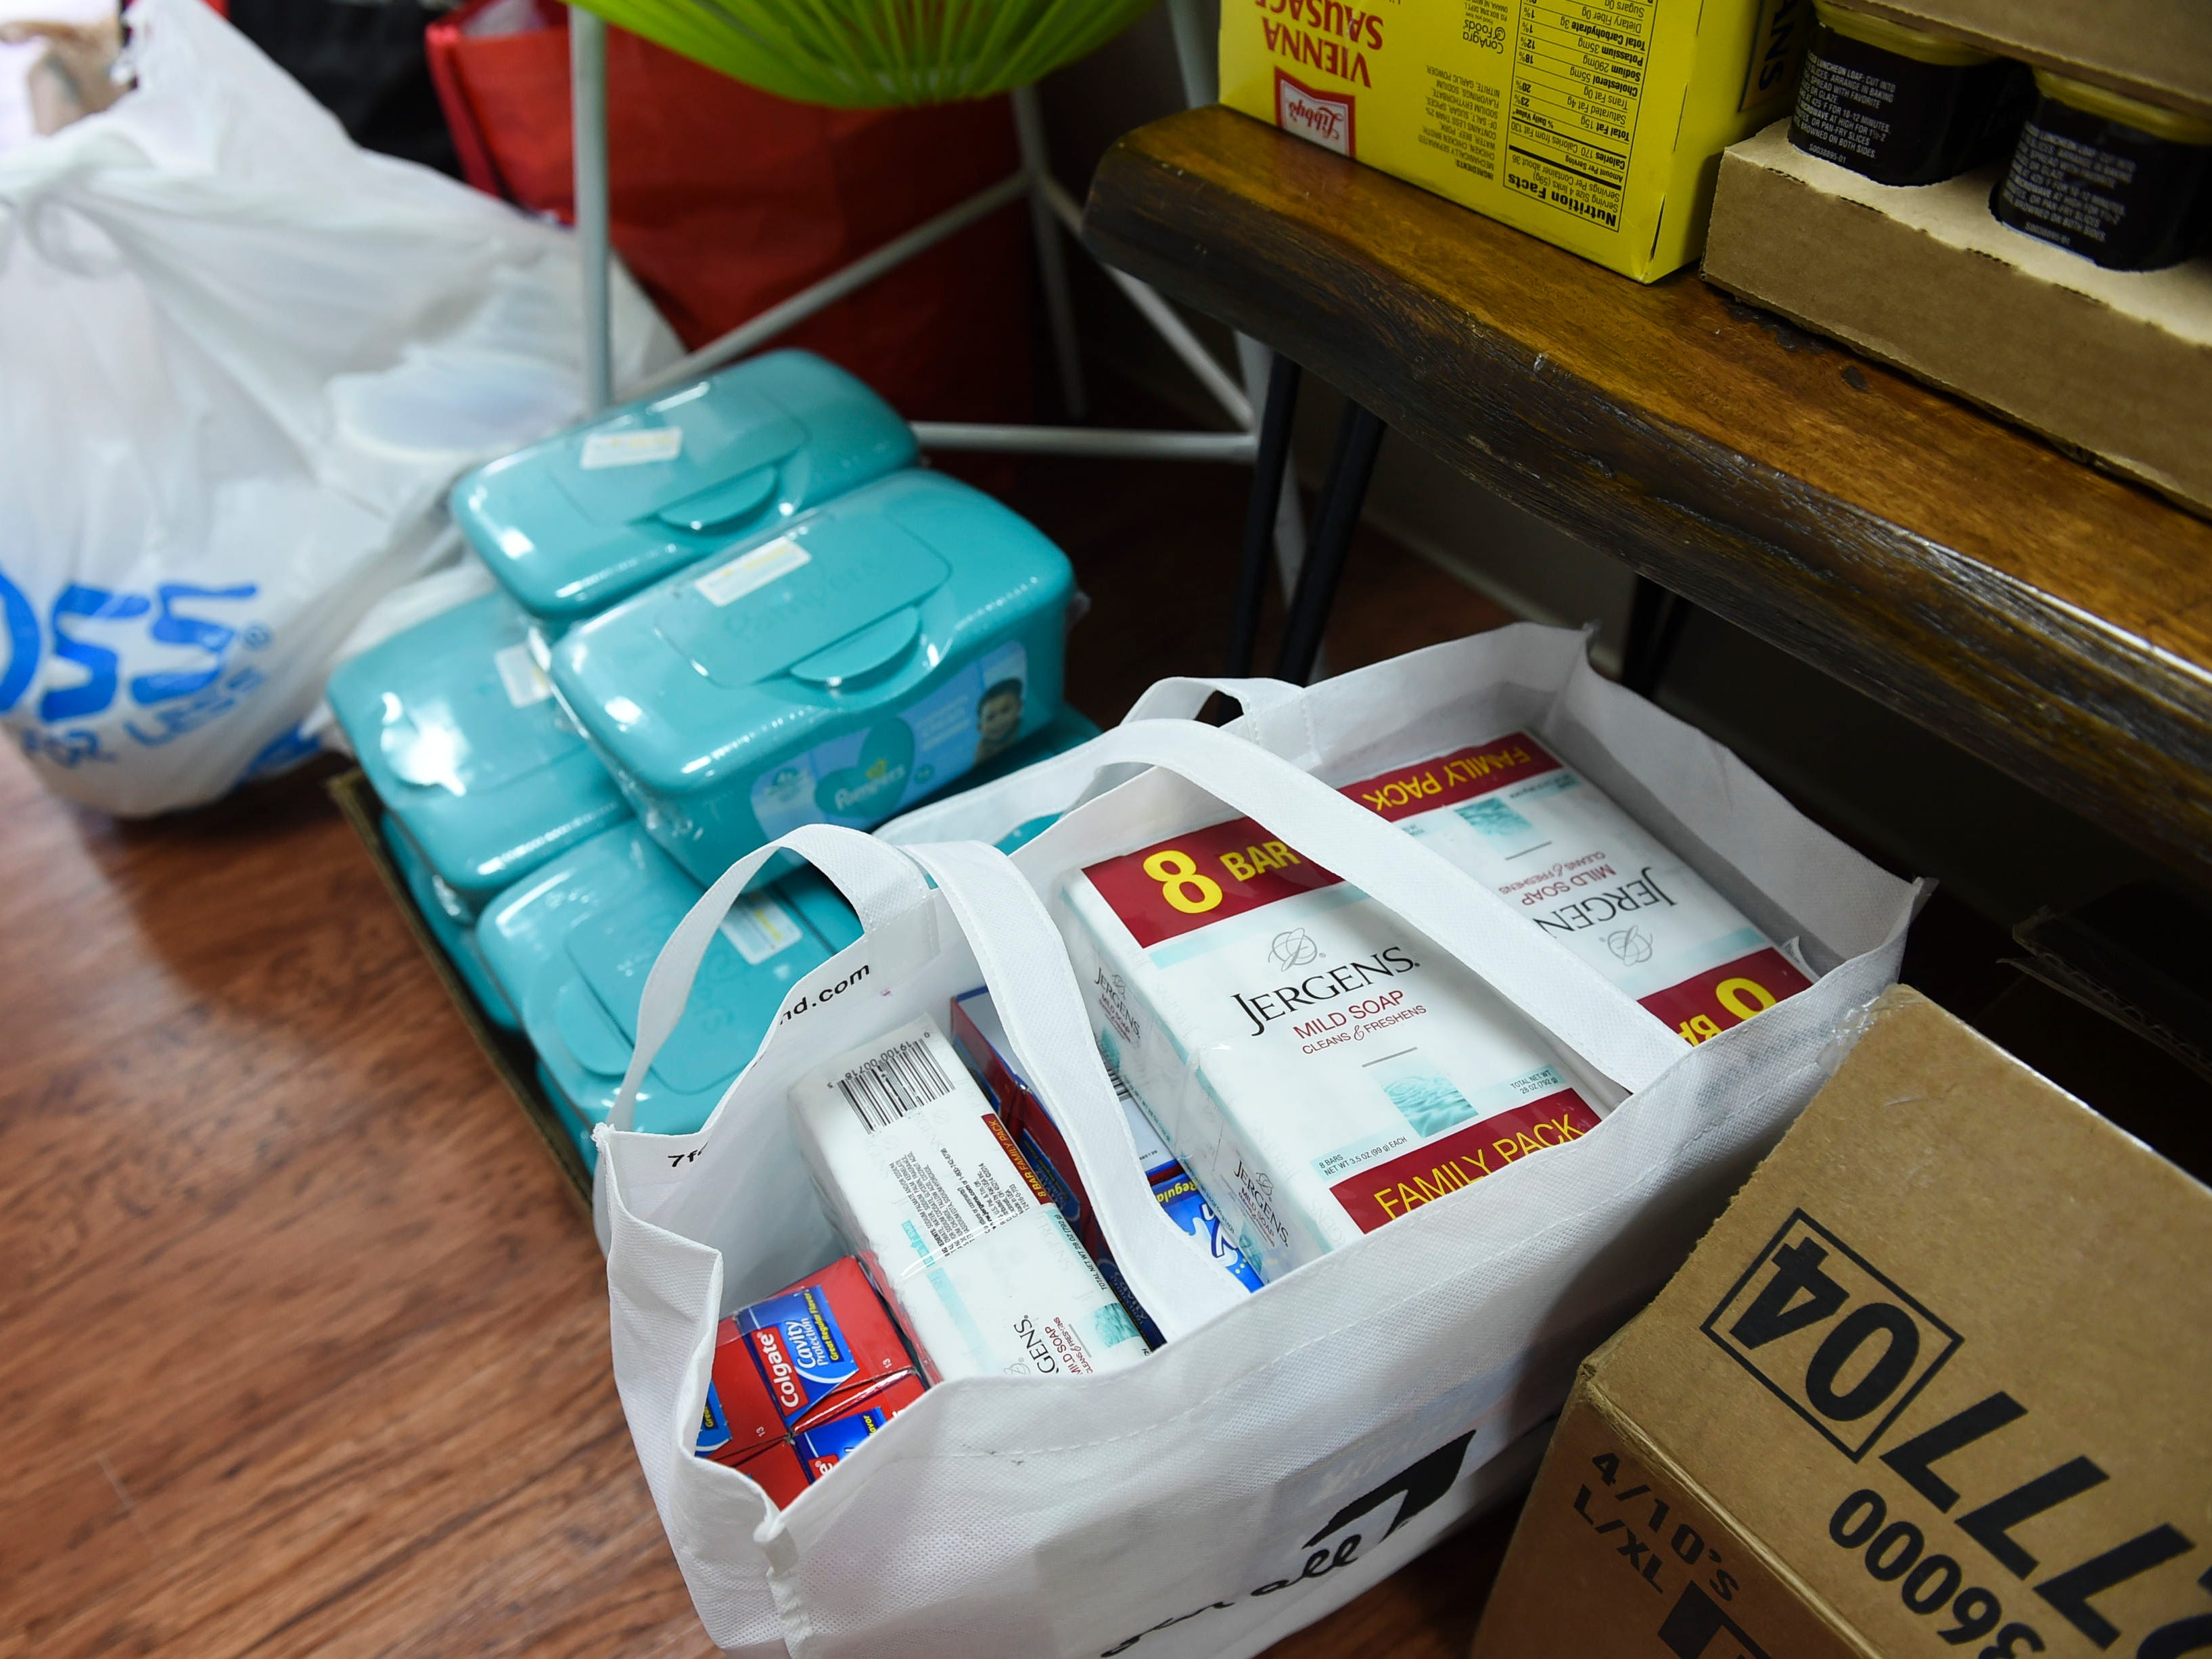 Donations for Prutehi Litekyan - Save Ritidian and Håya Foundation's Super Typhoon Yutu relief effort are collected at Health Shack in Hagåtña, Oct. 29, 2018.